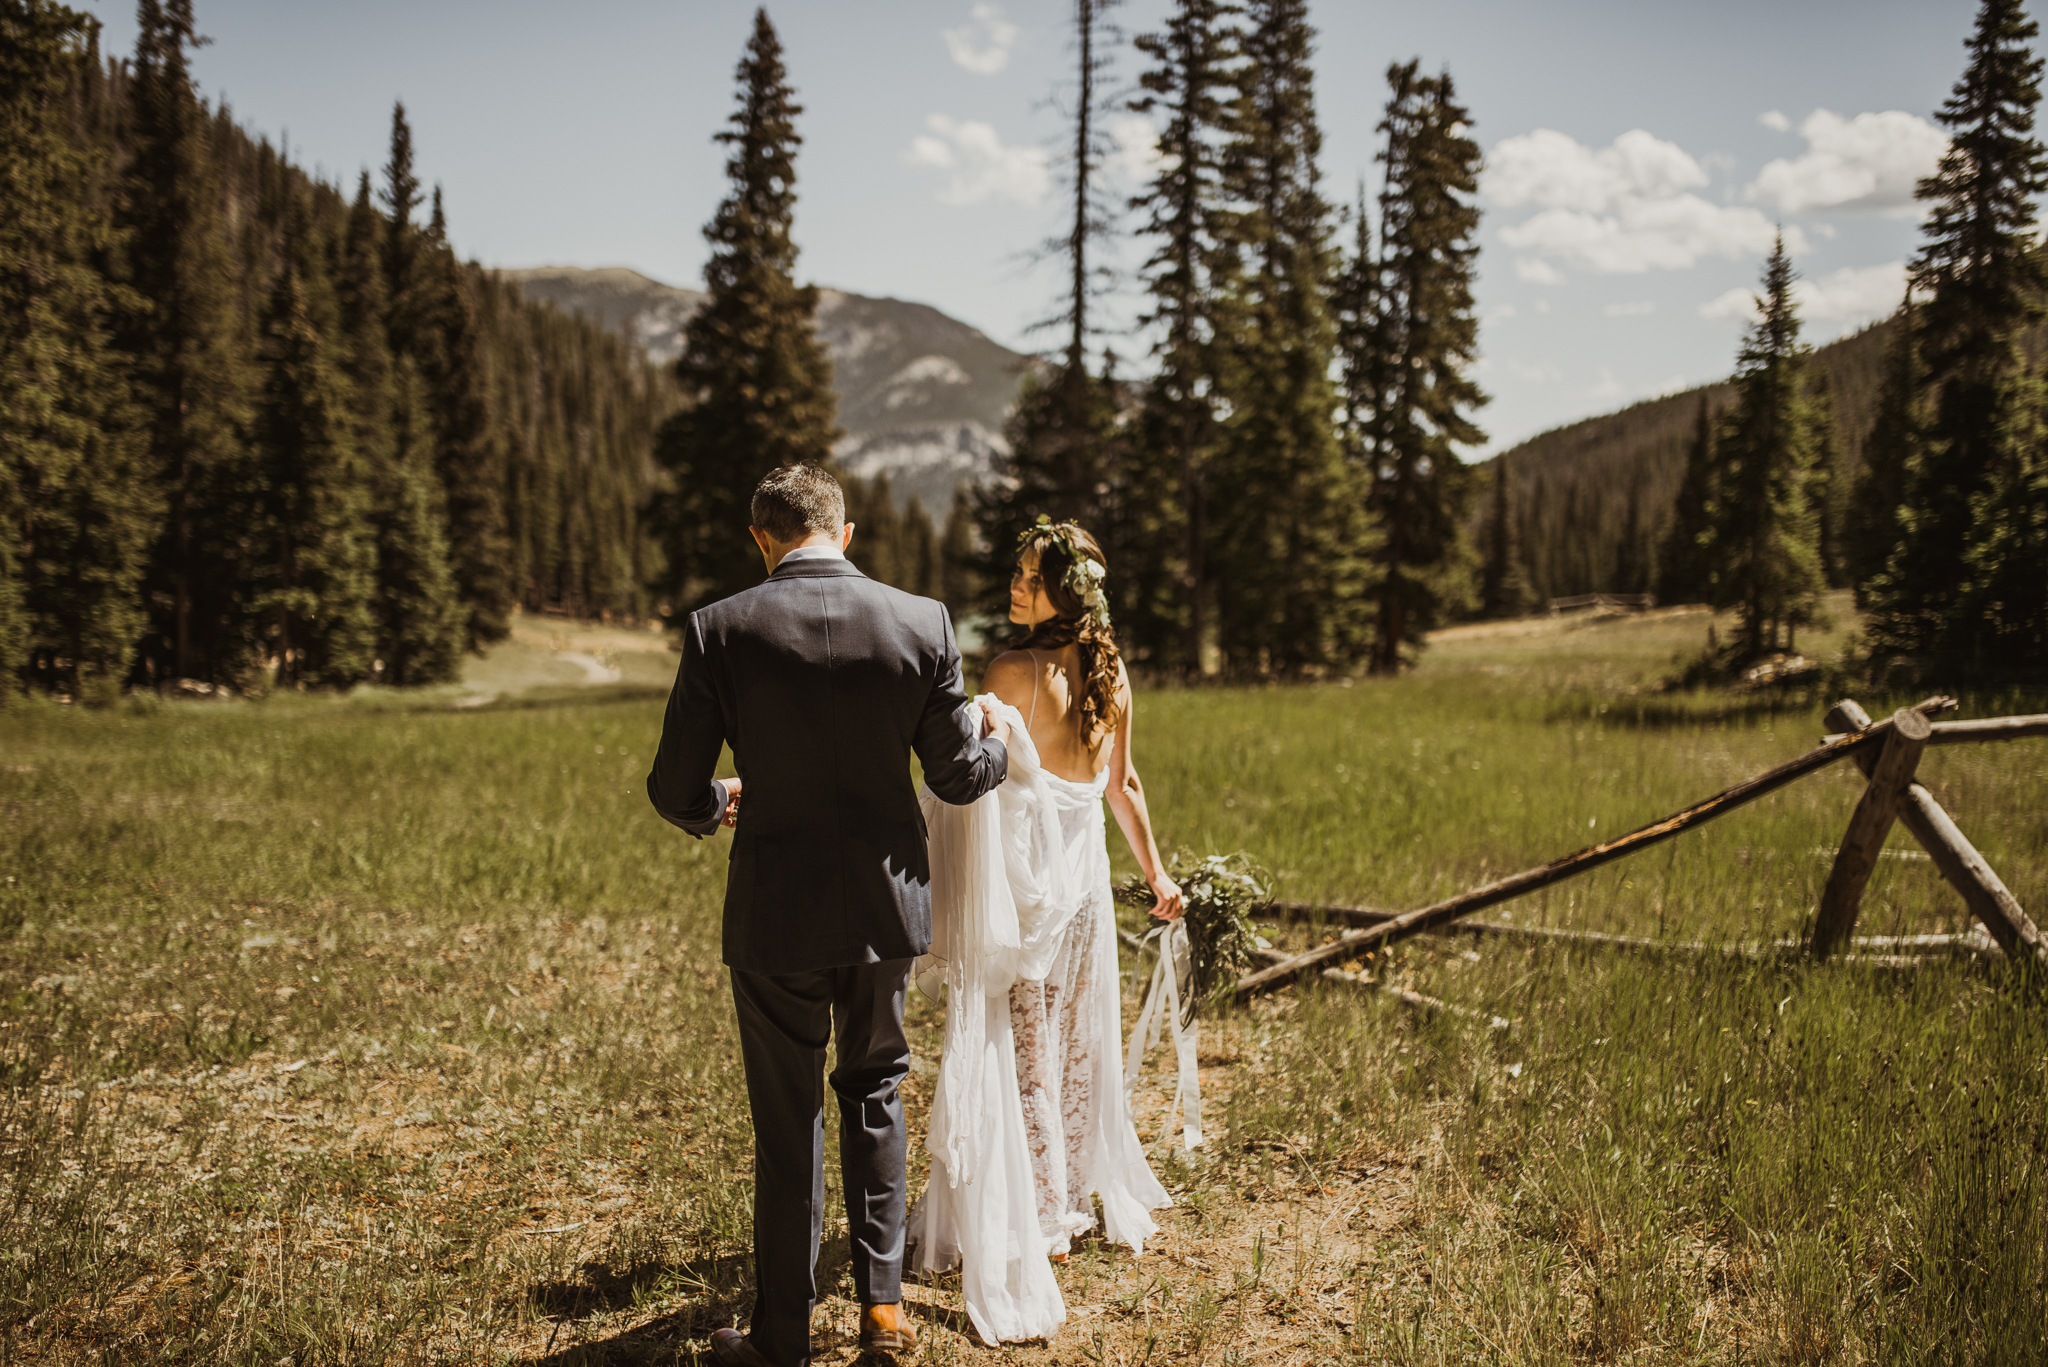 ©Isaiah + Taylor Photography - Estes National Park Adventure Elopement, Colorado Rockies-68.jpg